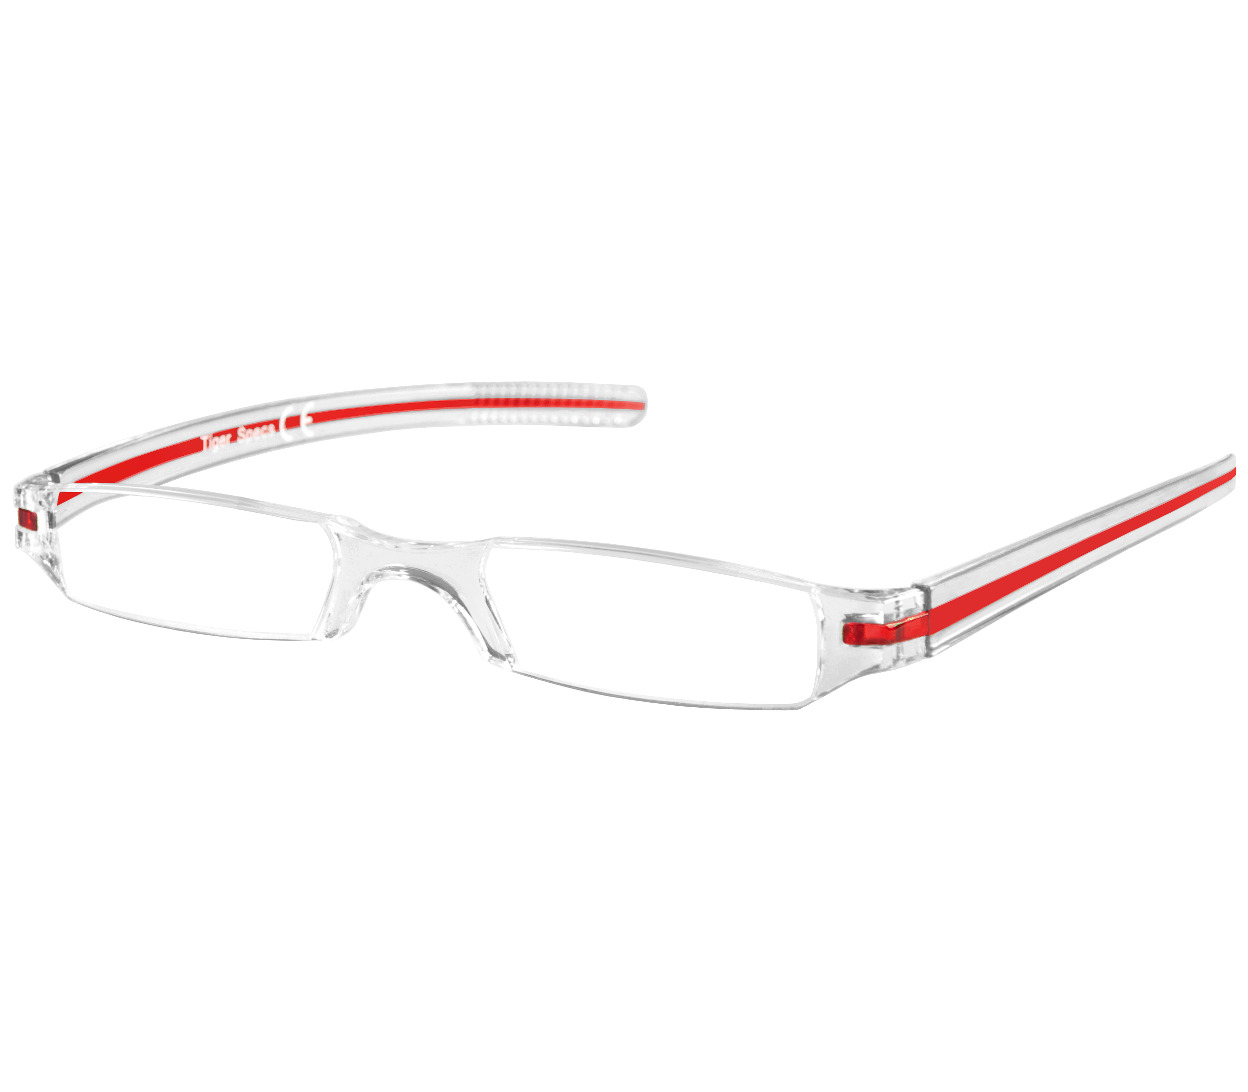 Main Image (Angle) - Soda (Red) Tube Reading Glasses